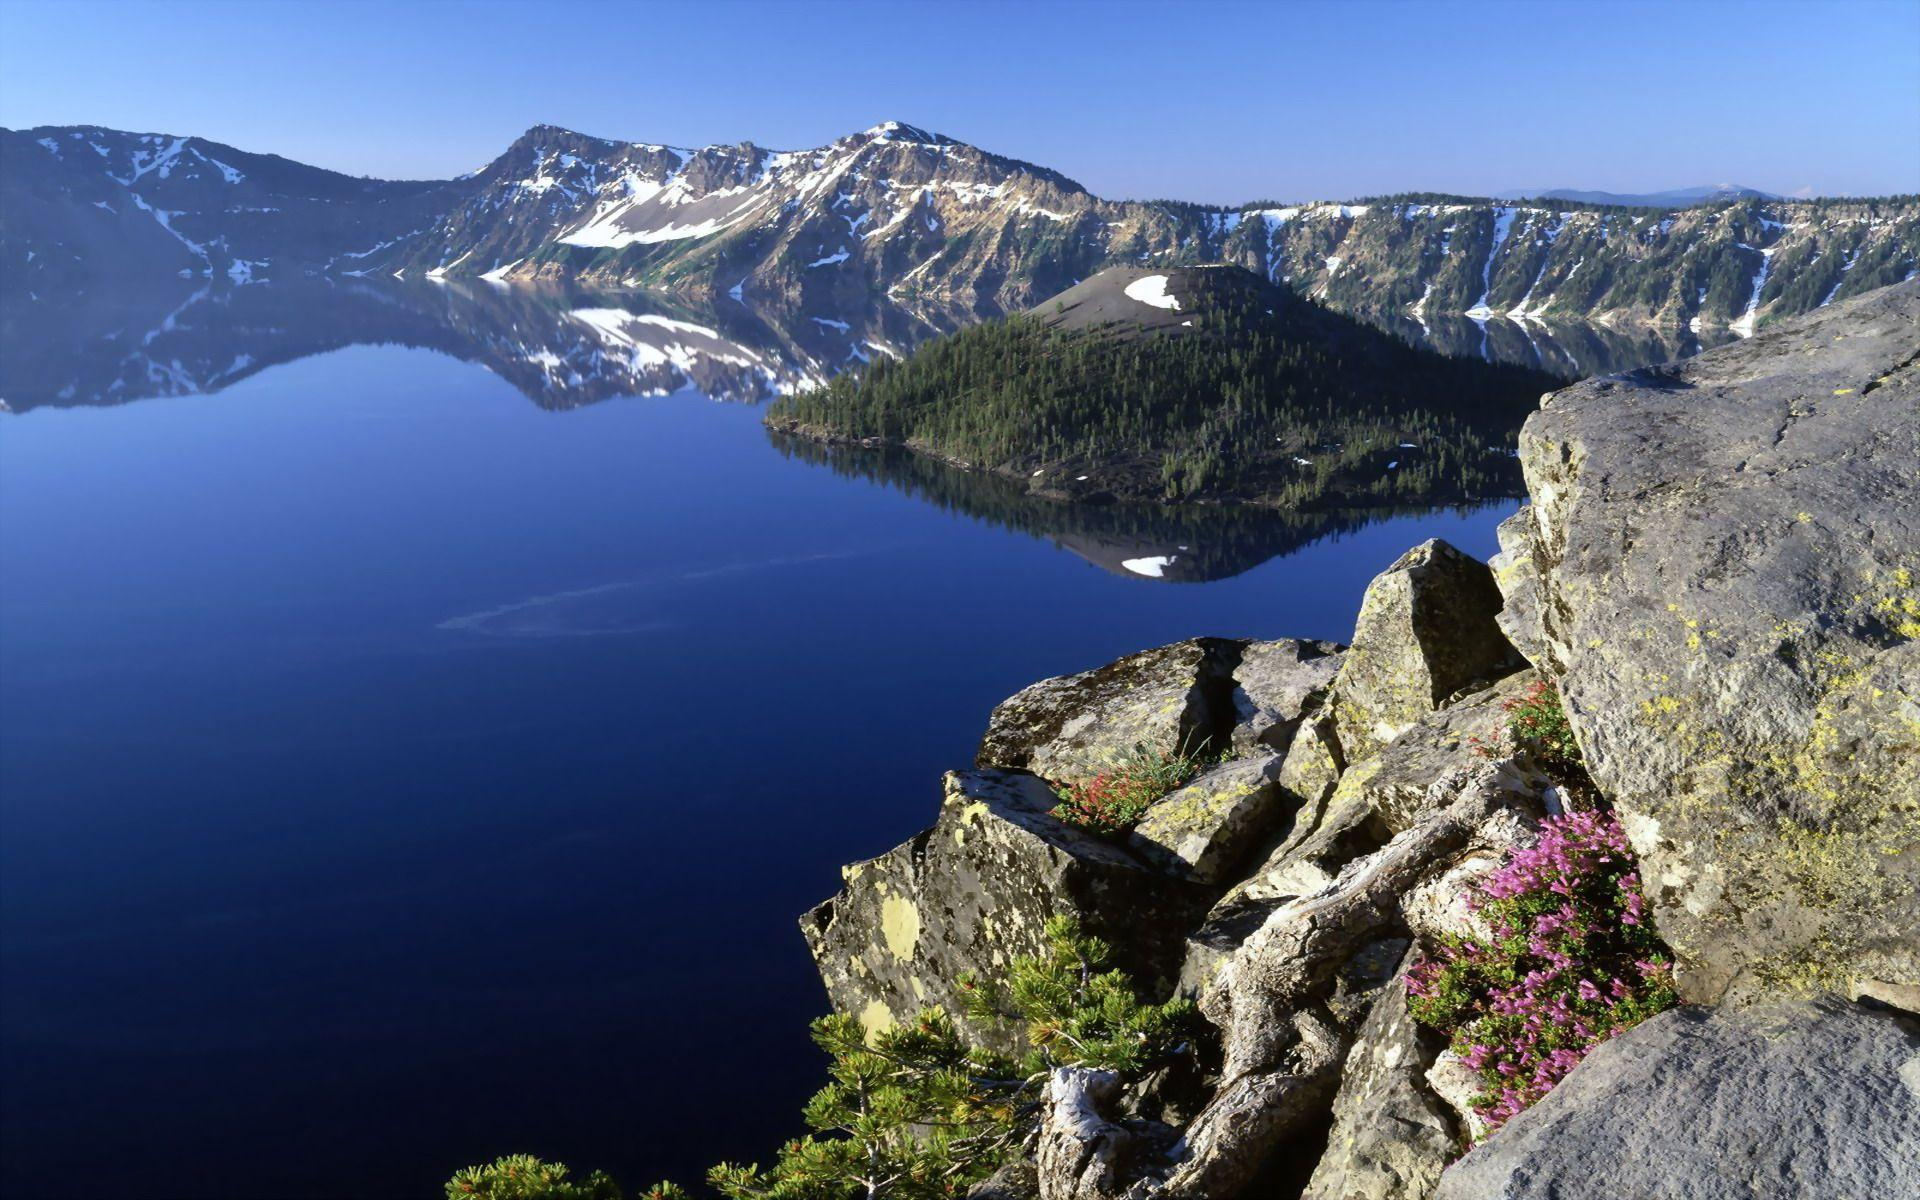 Crater Lake Wallpaper - WallpaperSafari